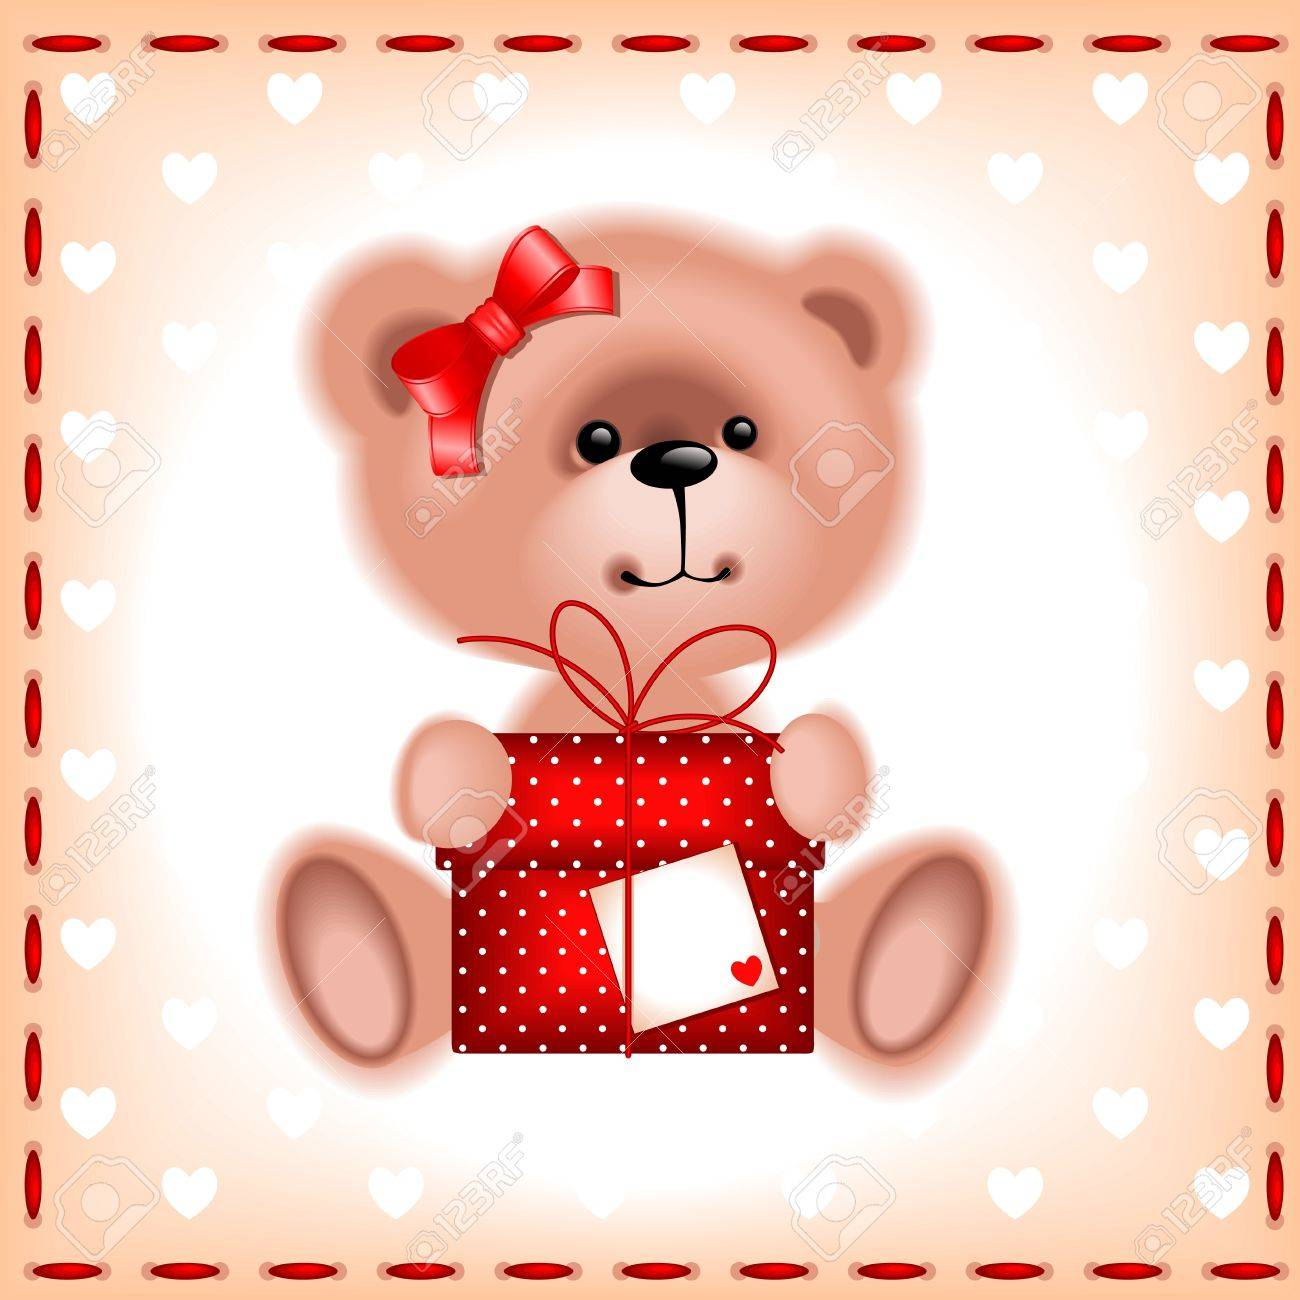 holiday cards. teddy bear girl with a gift on the beige background with hearts - 11068801